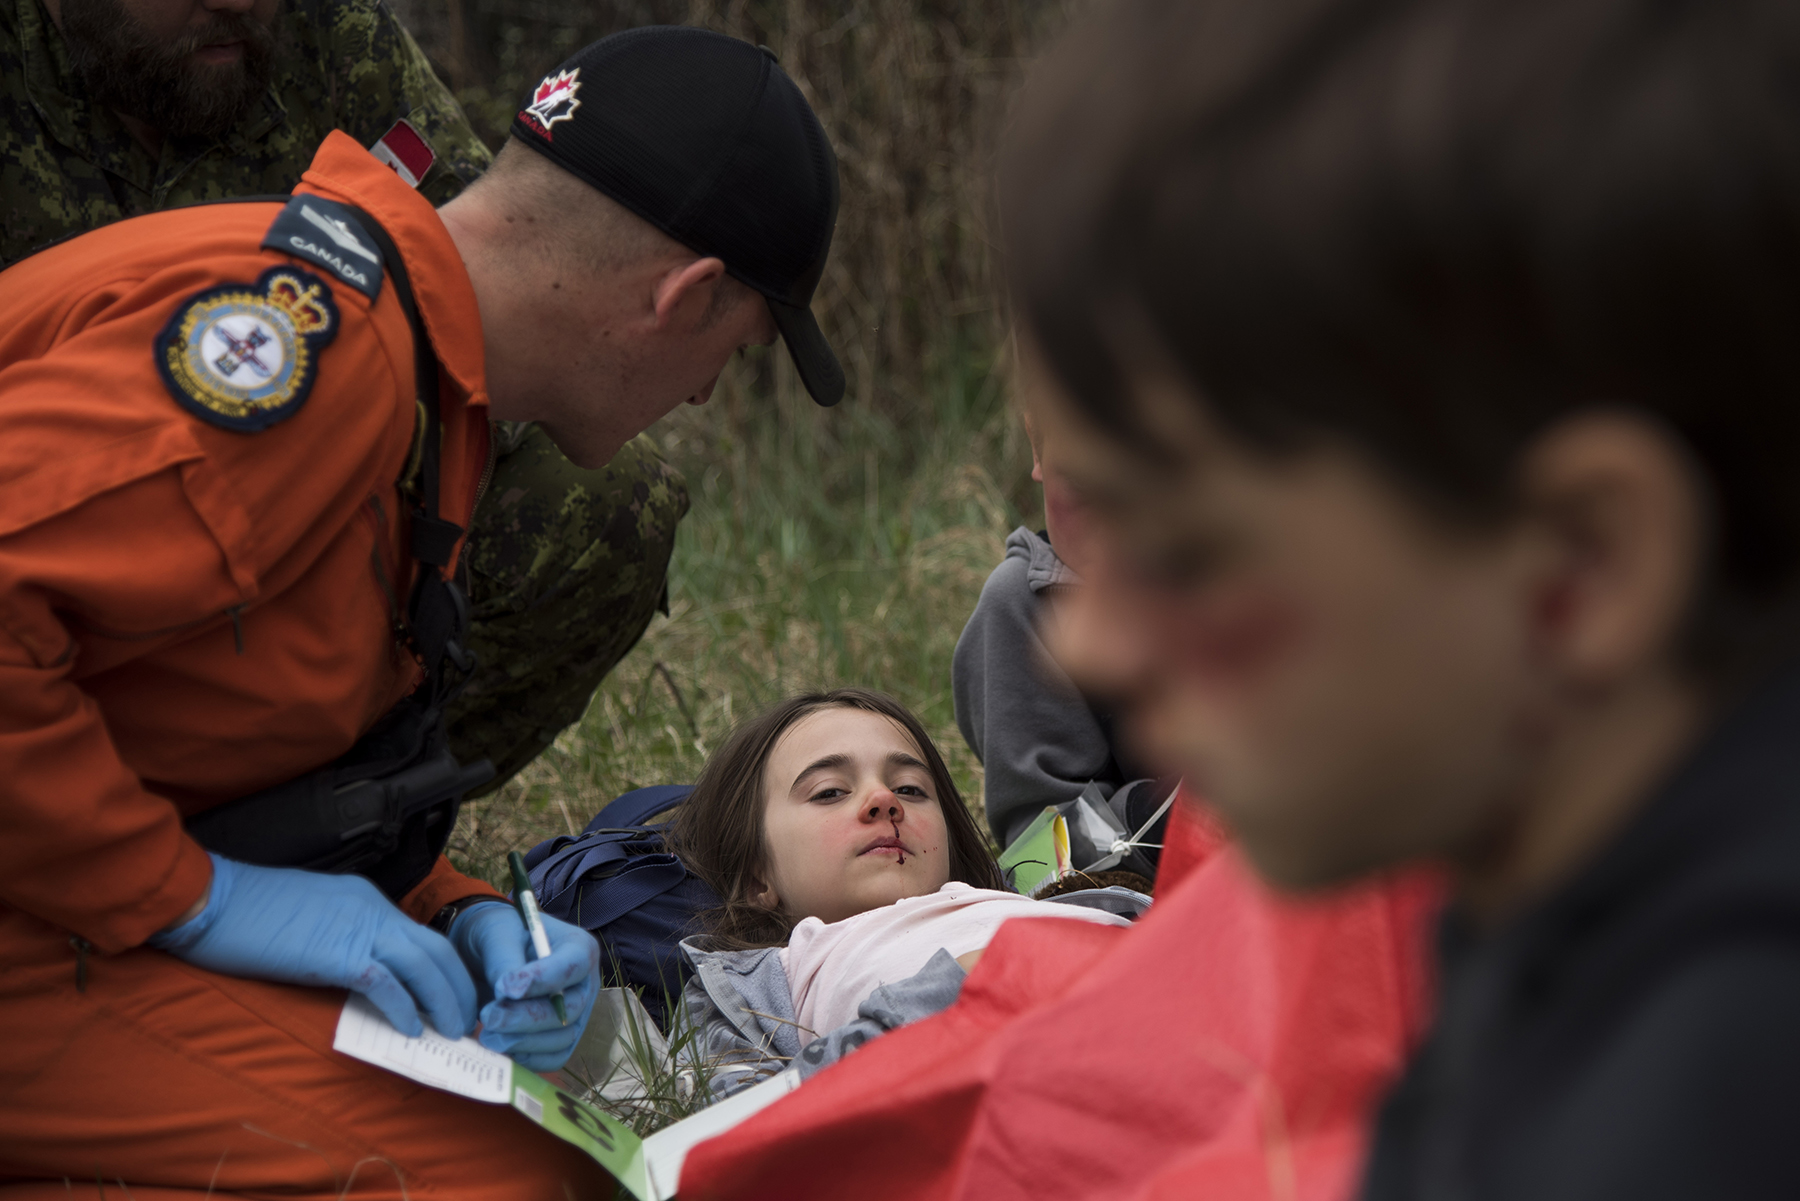 A person wearing orange clothing tends to a girl with simulated injuries.